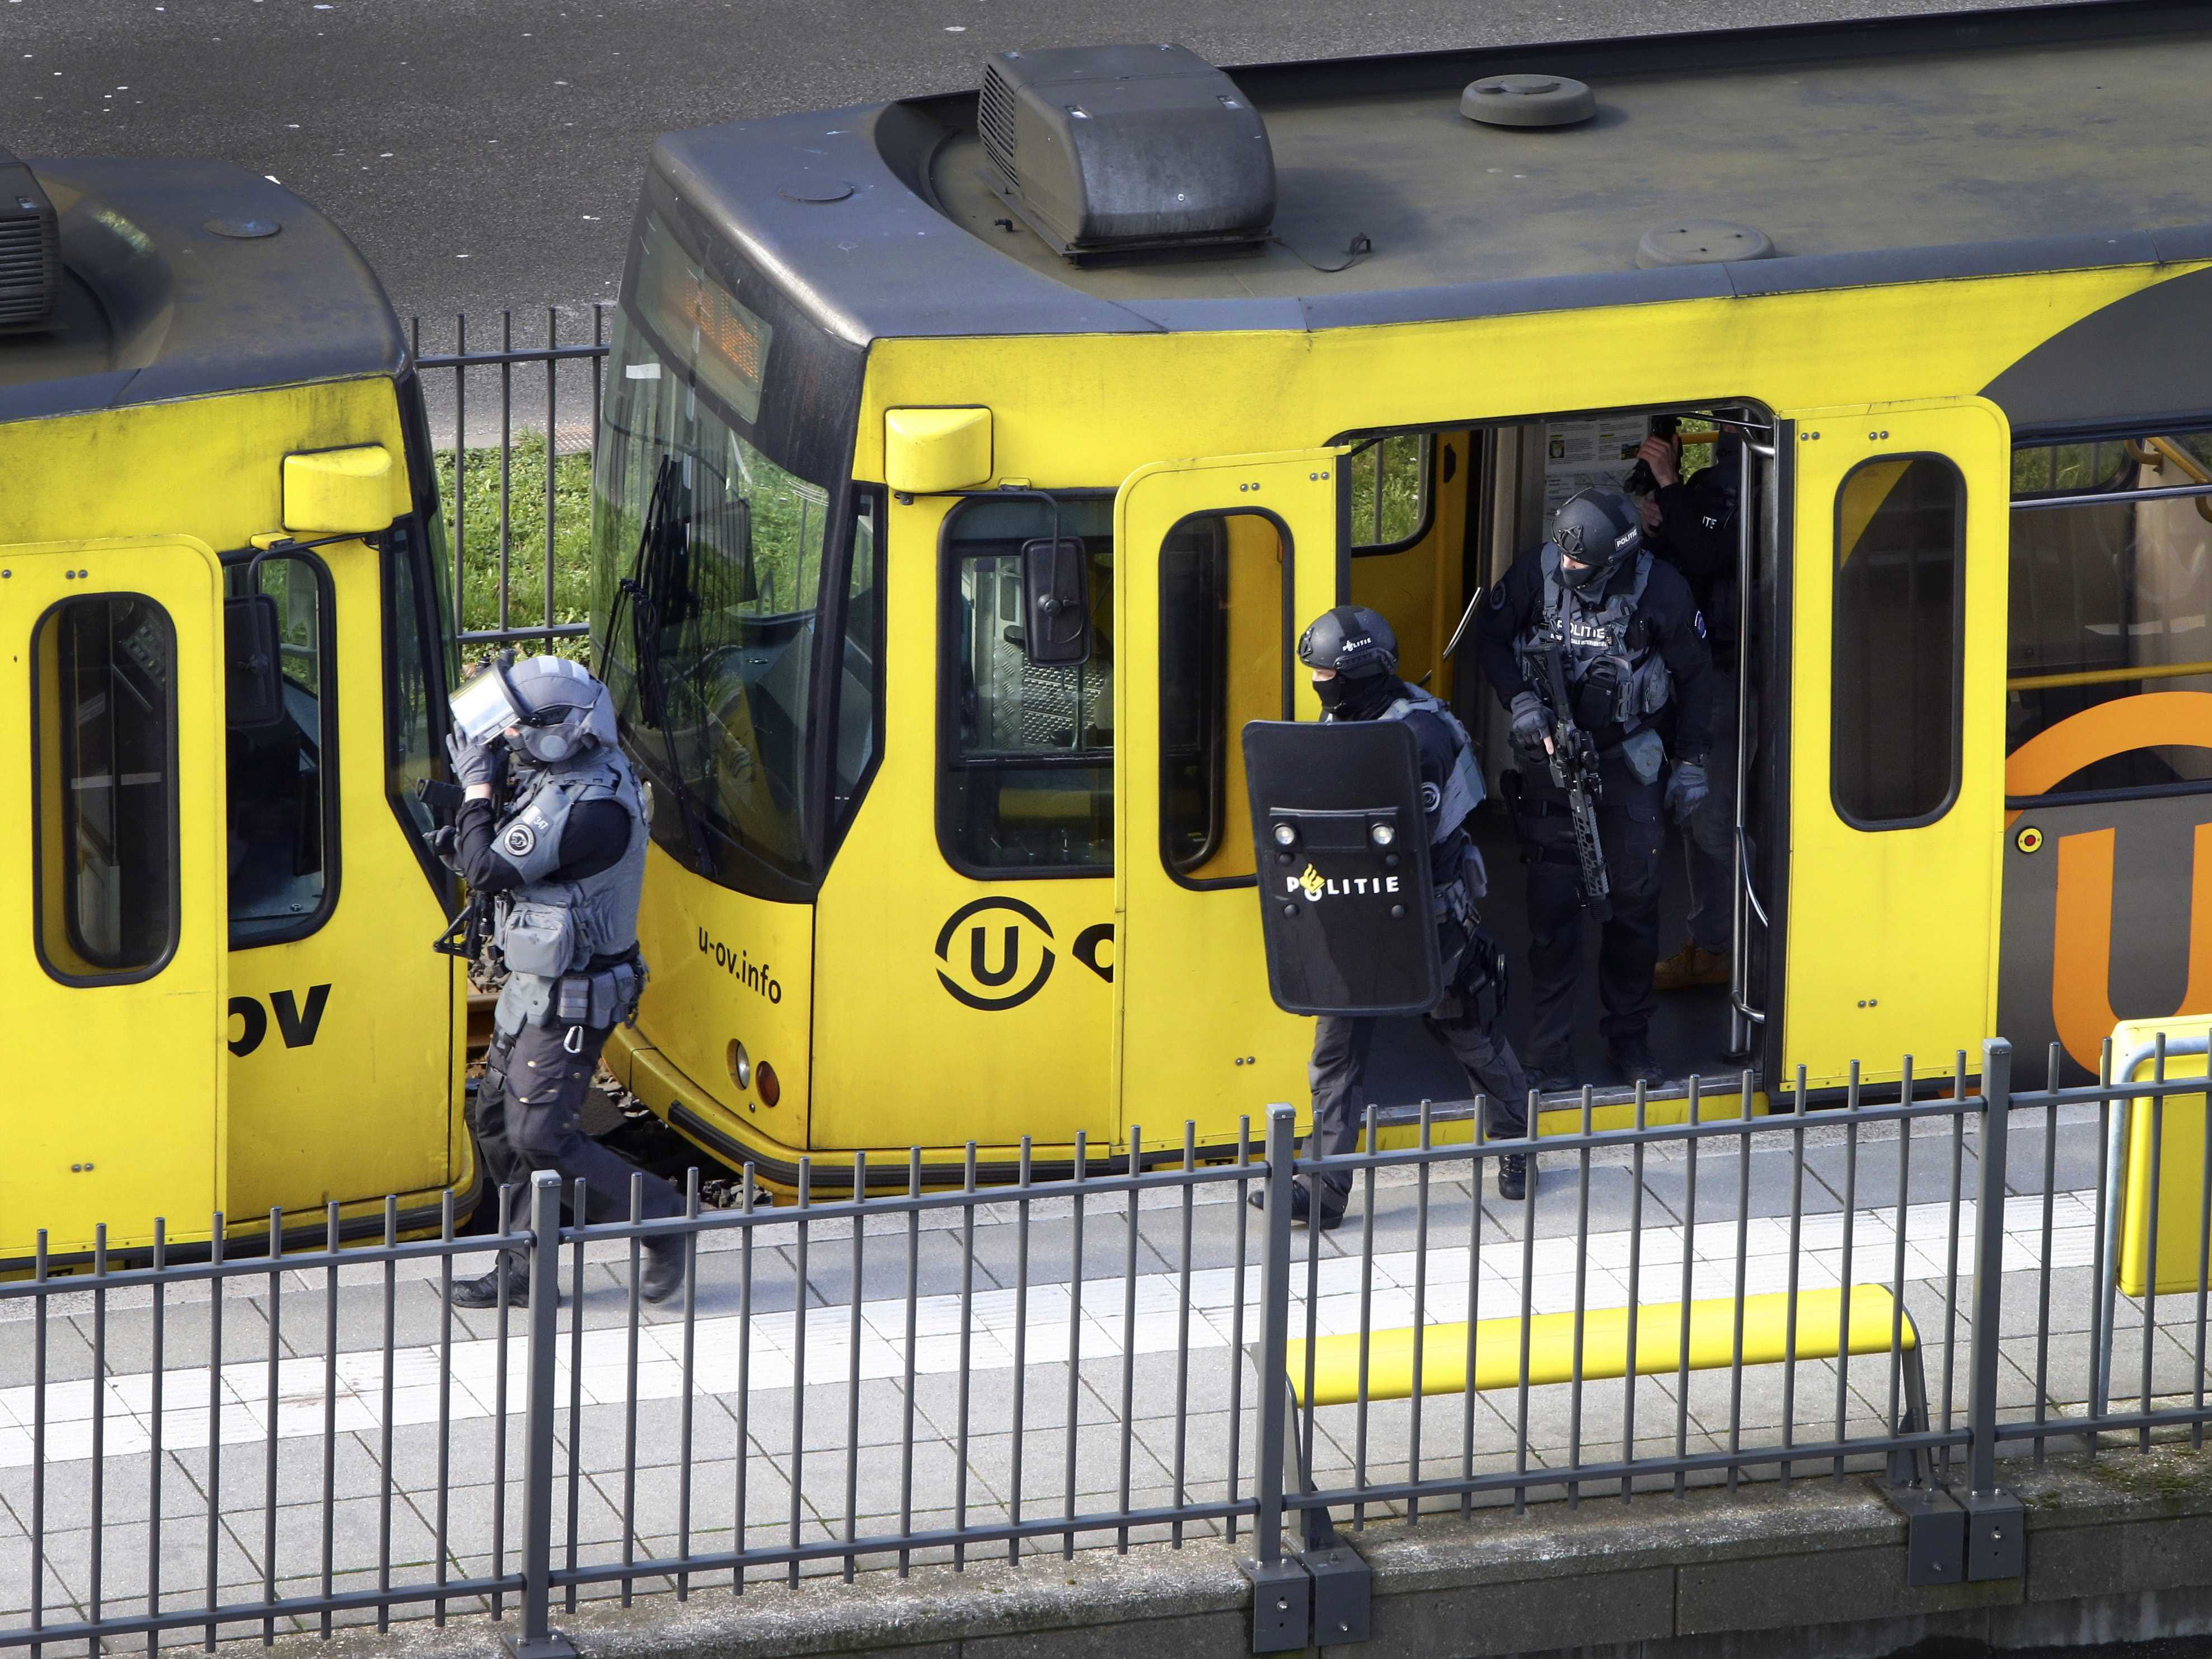 Special Police Forces inspect a tram, after the attack on a tram at the 24 Oktoberplace in Utrecht, The Netherlands,  March 18, 2019.  Three people were killed and nine injured in a shooting on a tram in the Dutch city of Utrecht, the mayor said on March 18, adding that authorities were working on the basis of it being a terror attack.